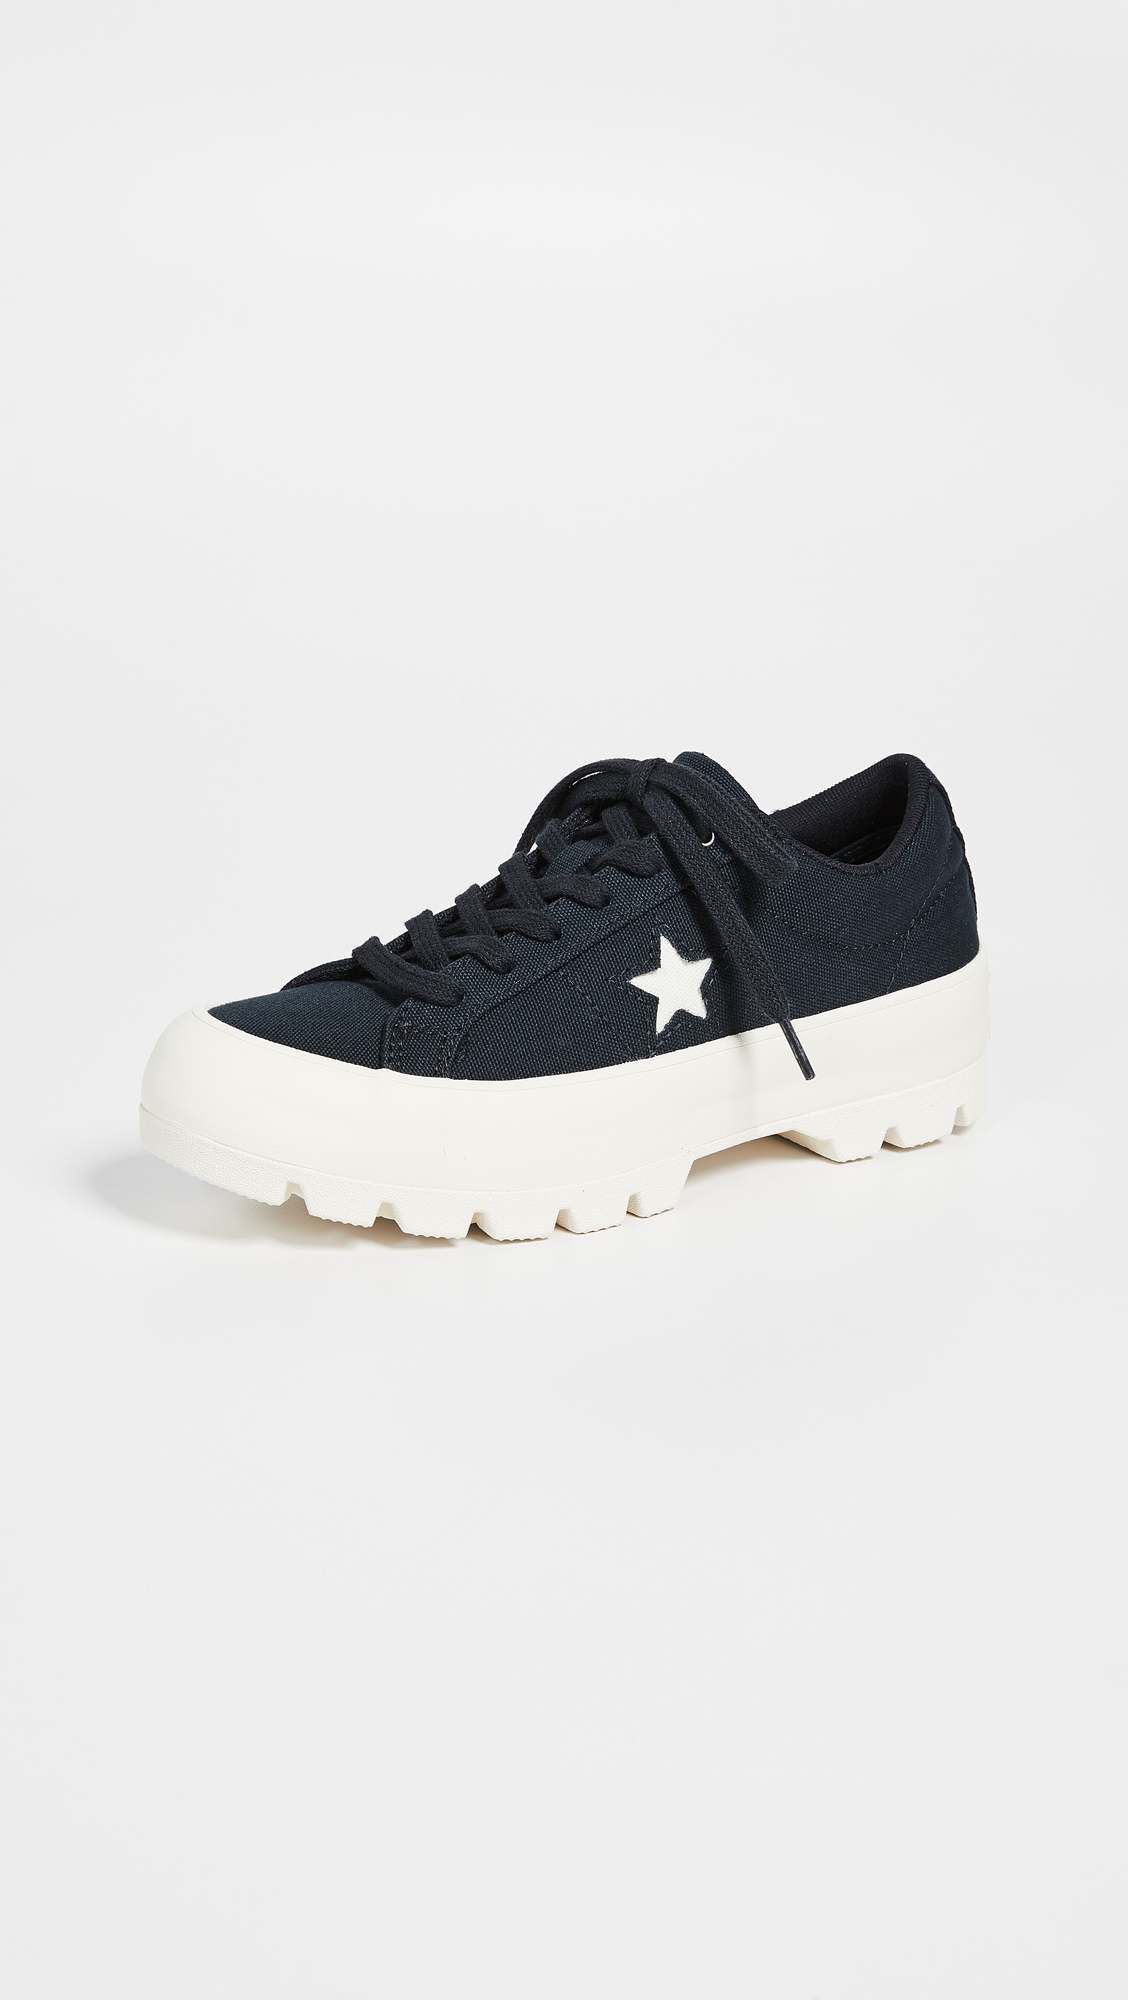 converse one star lugged